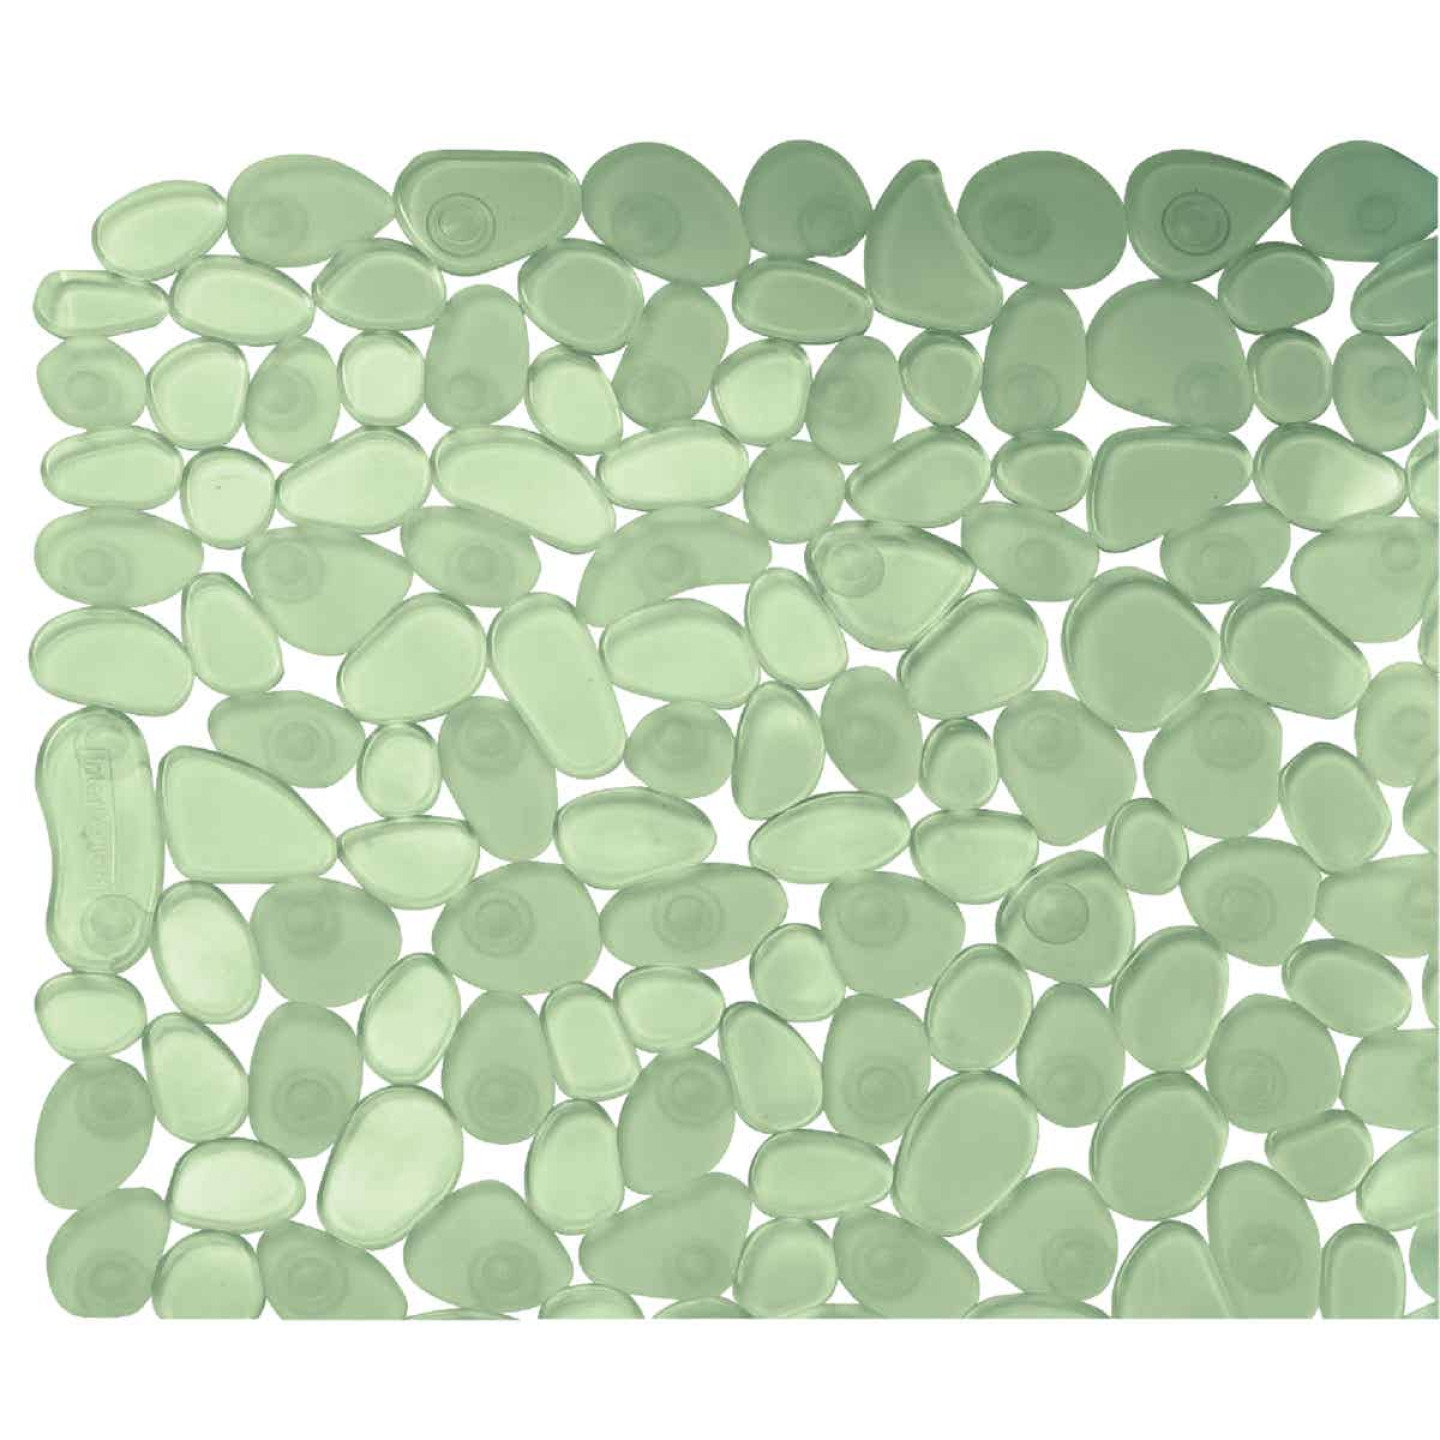 InterDesign Pebblz 13.75 In. x 26.50 In. Green Bath Mat Image 1